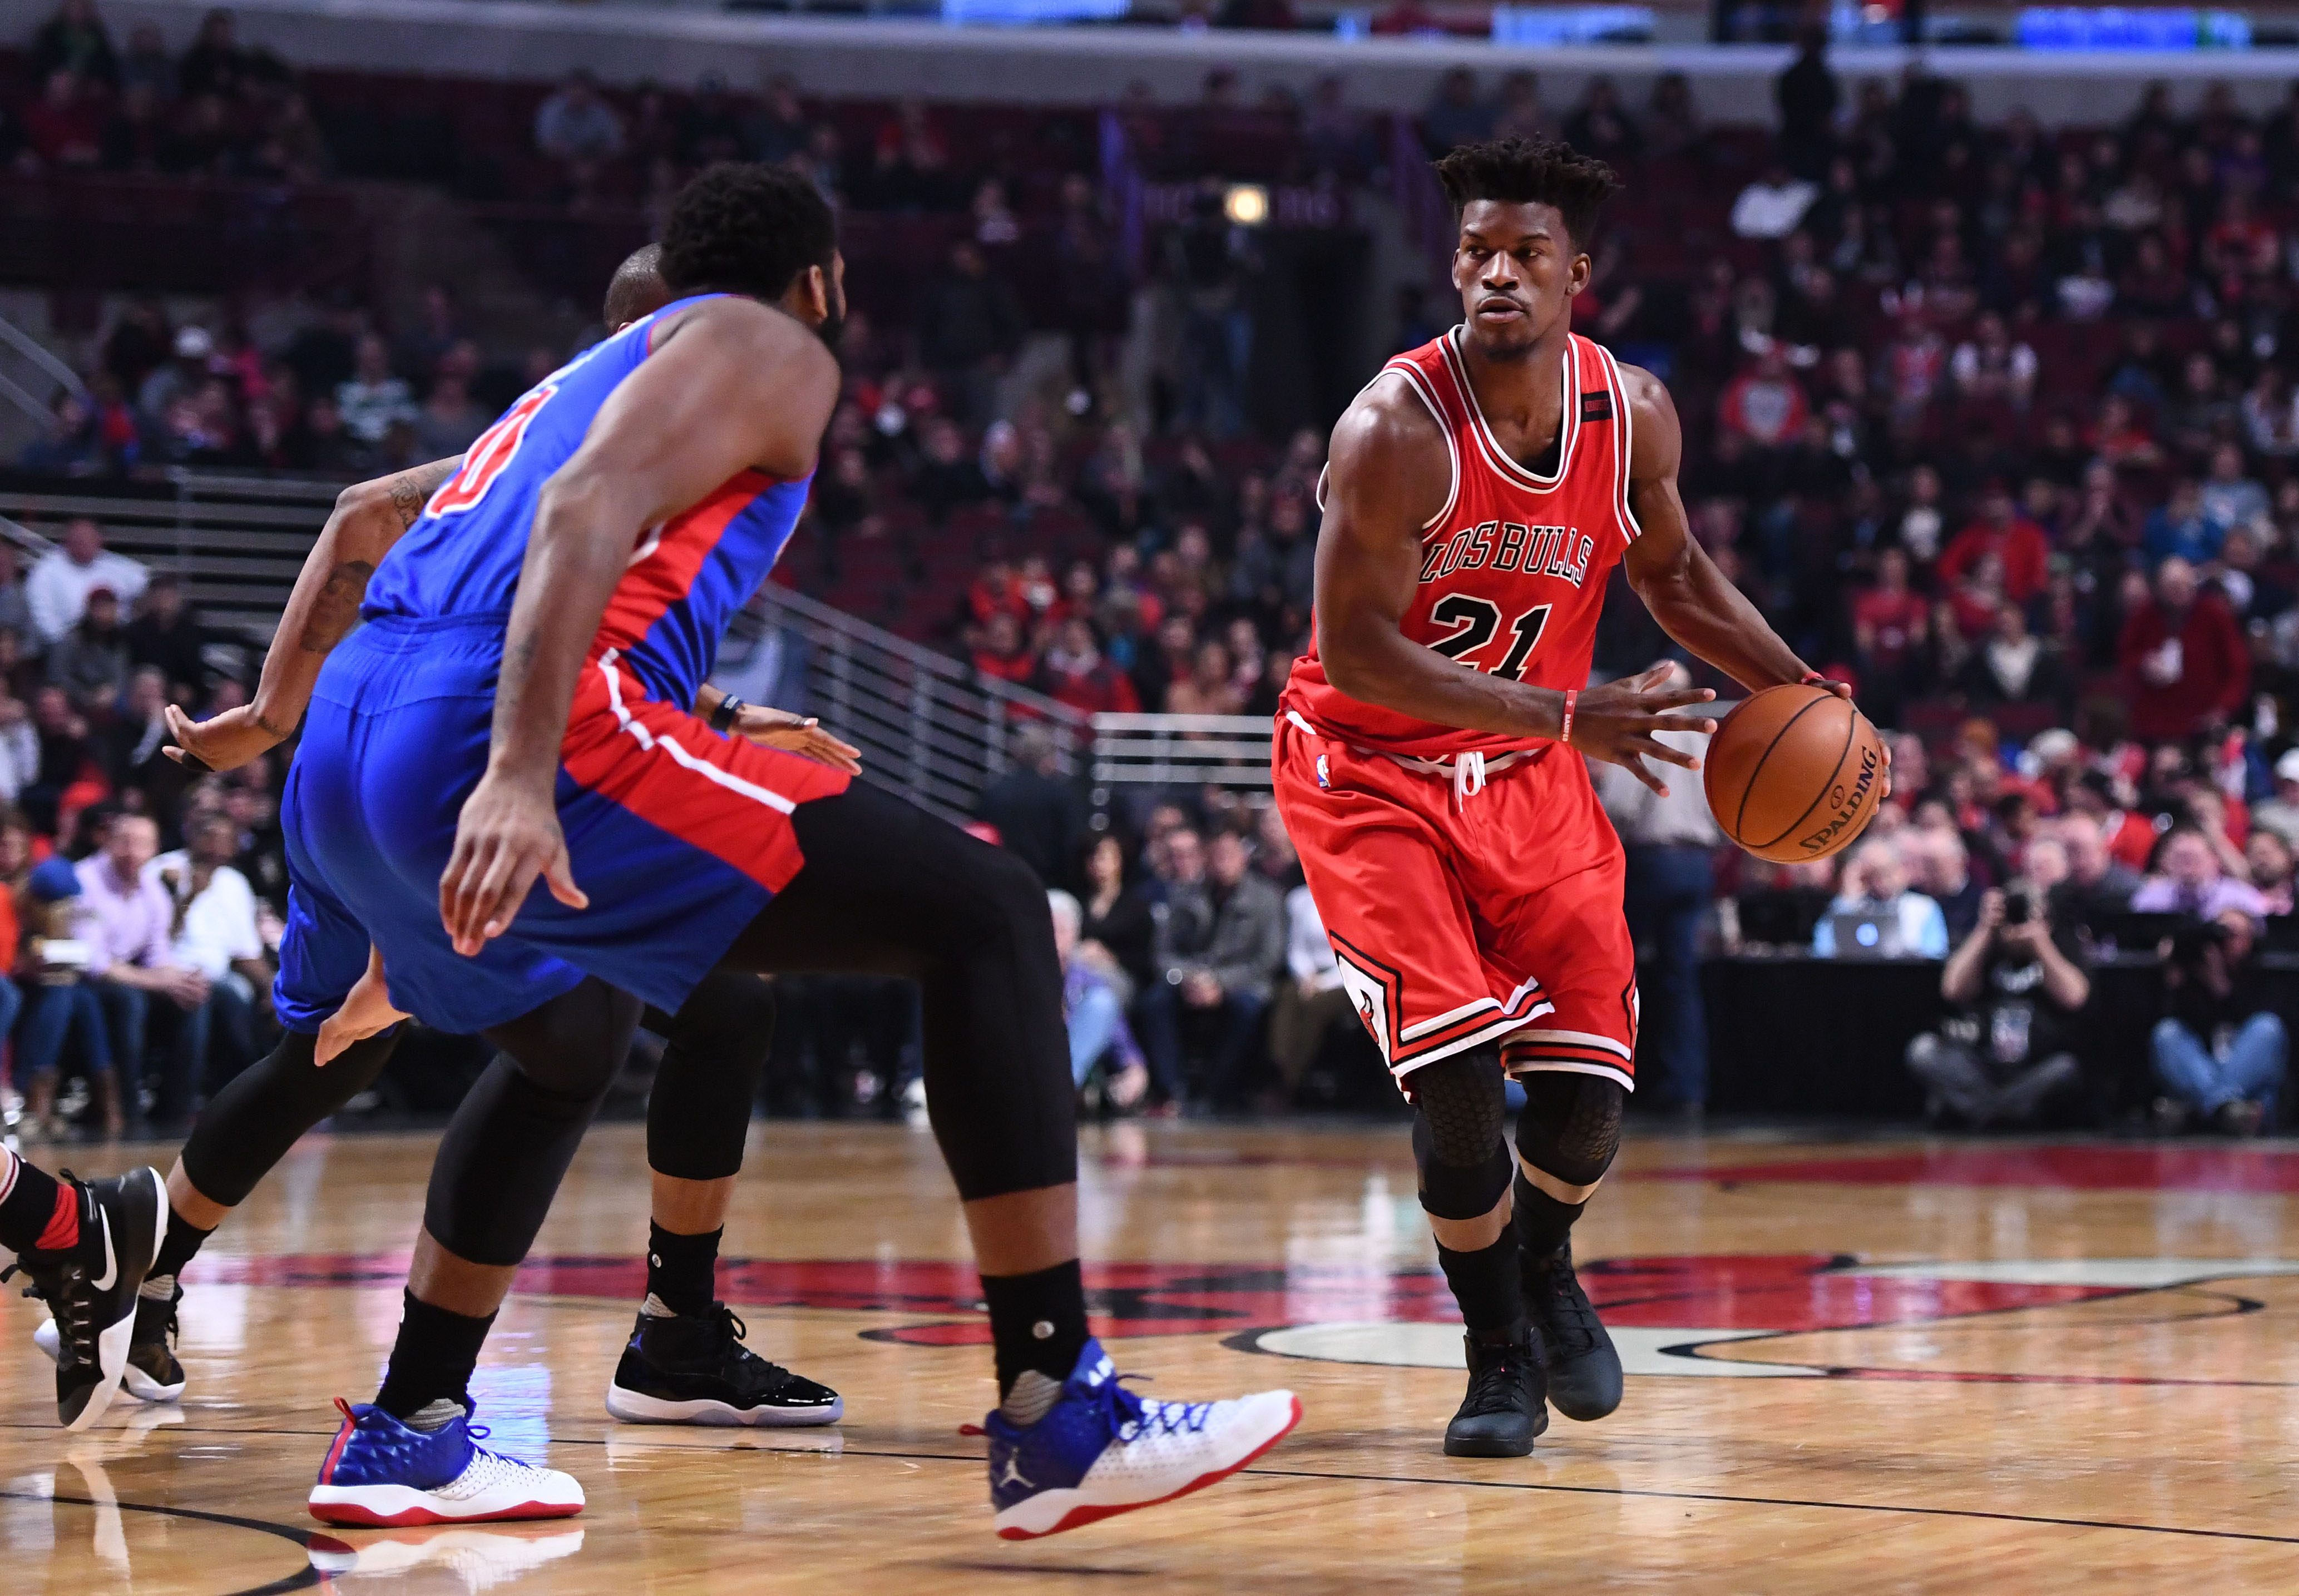 9965075-nba-detroit-pistons-at-chicago-bulls